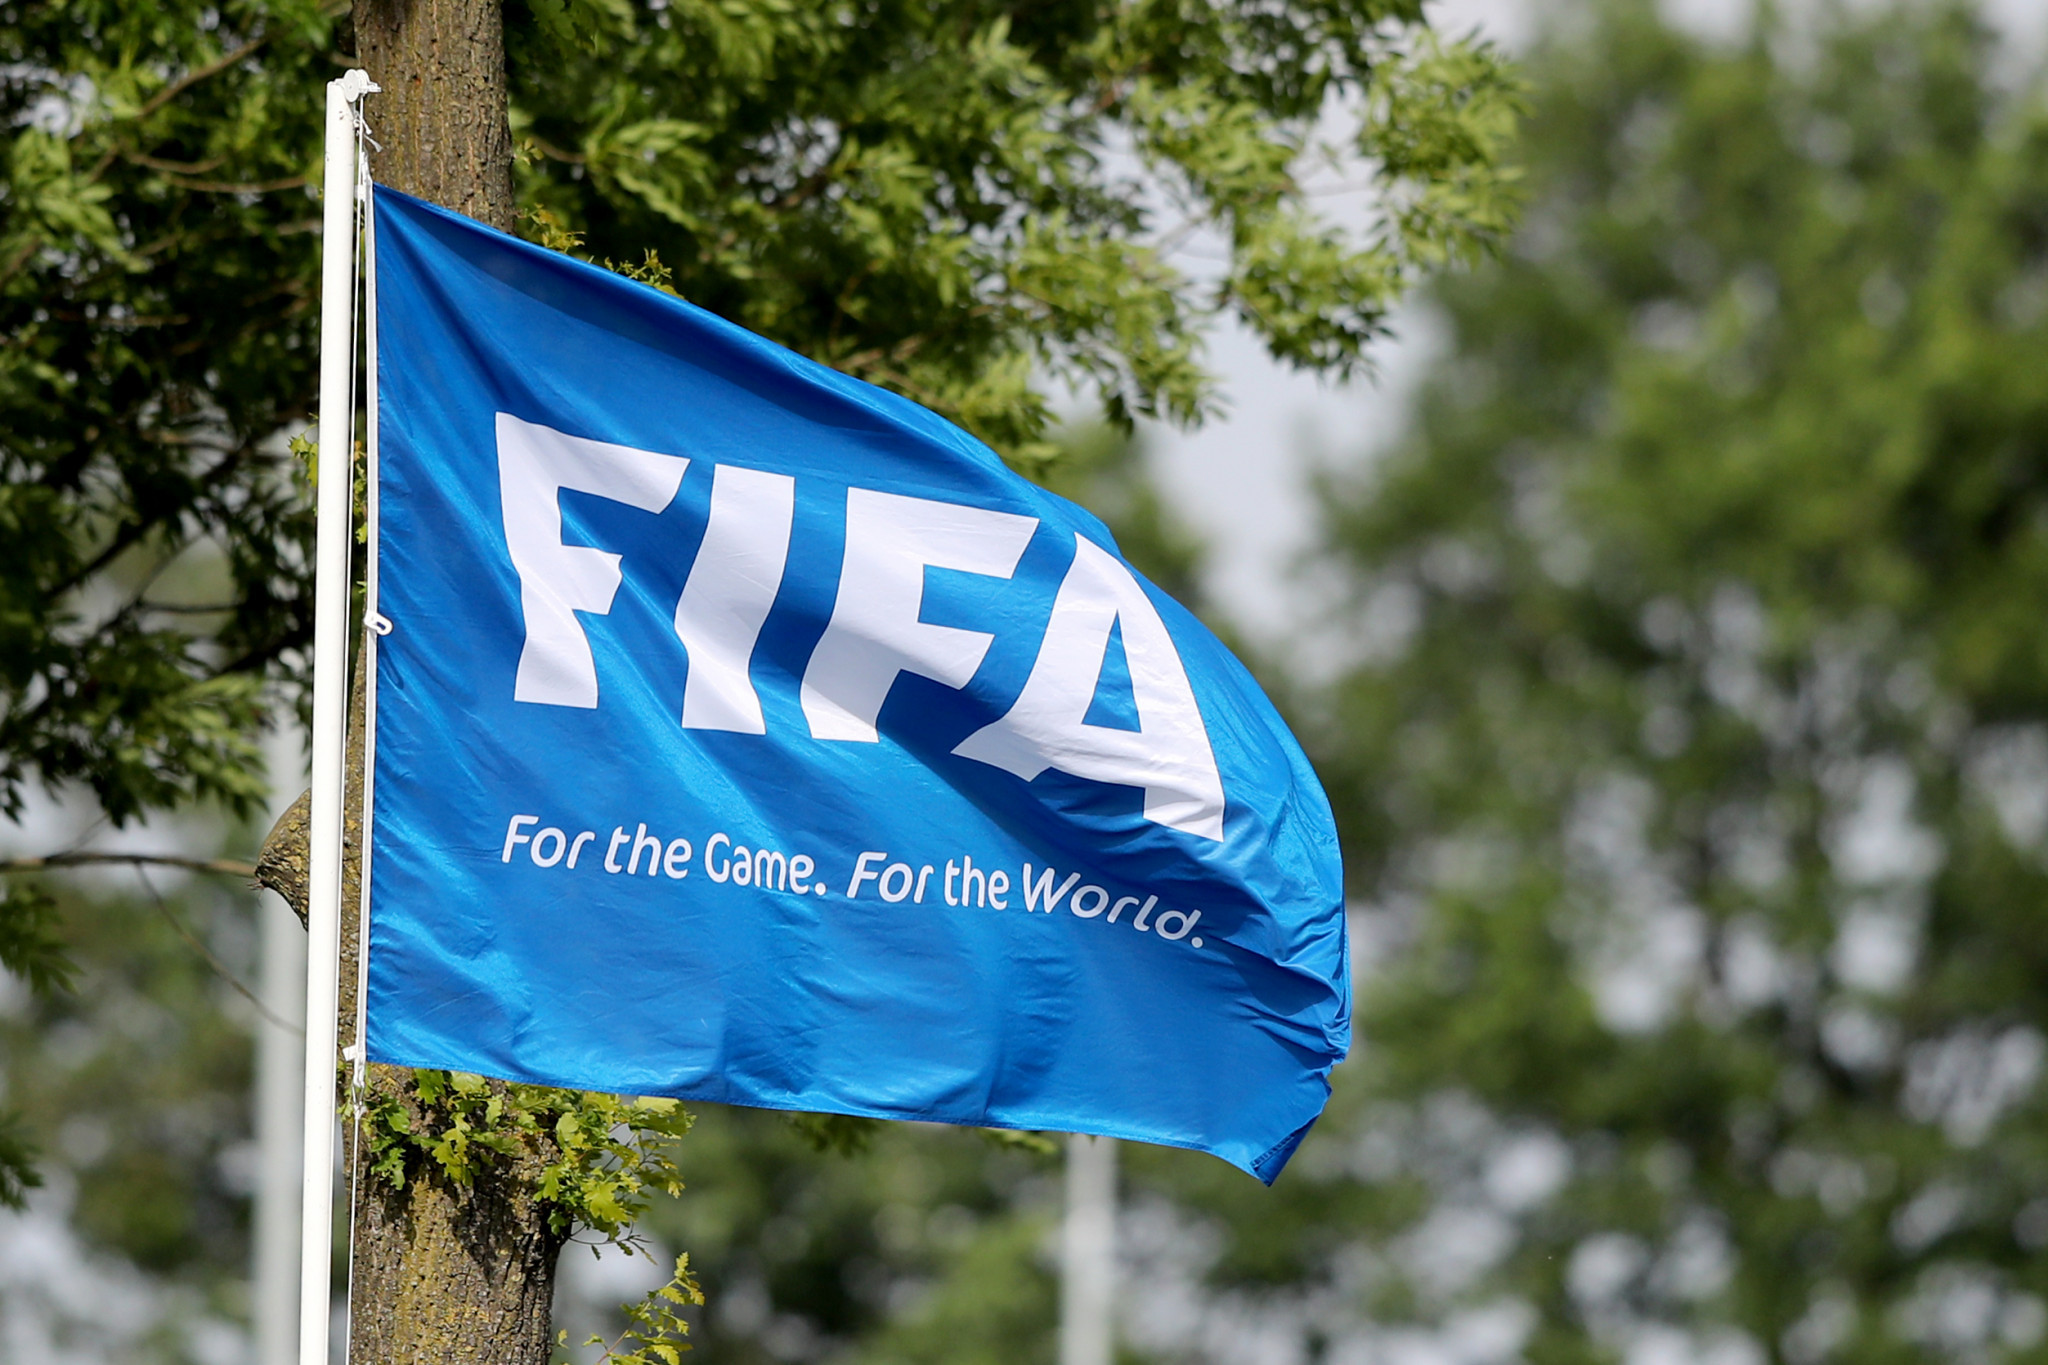 FIFA has issued a warning amid speculation a European super league could be formed ©Getty Images